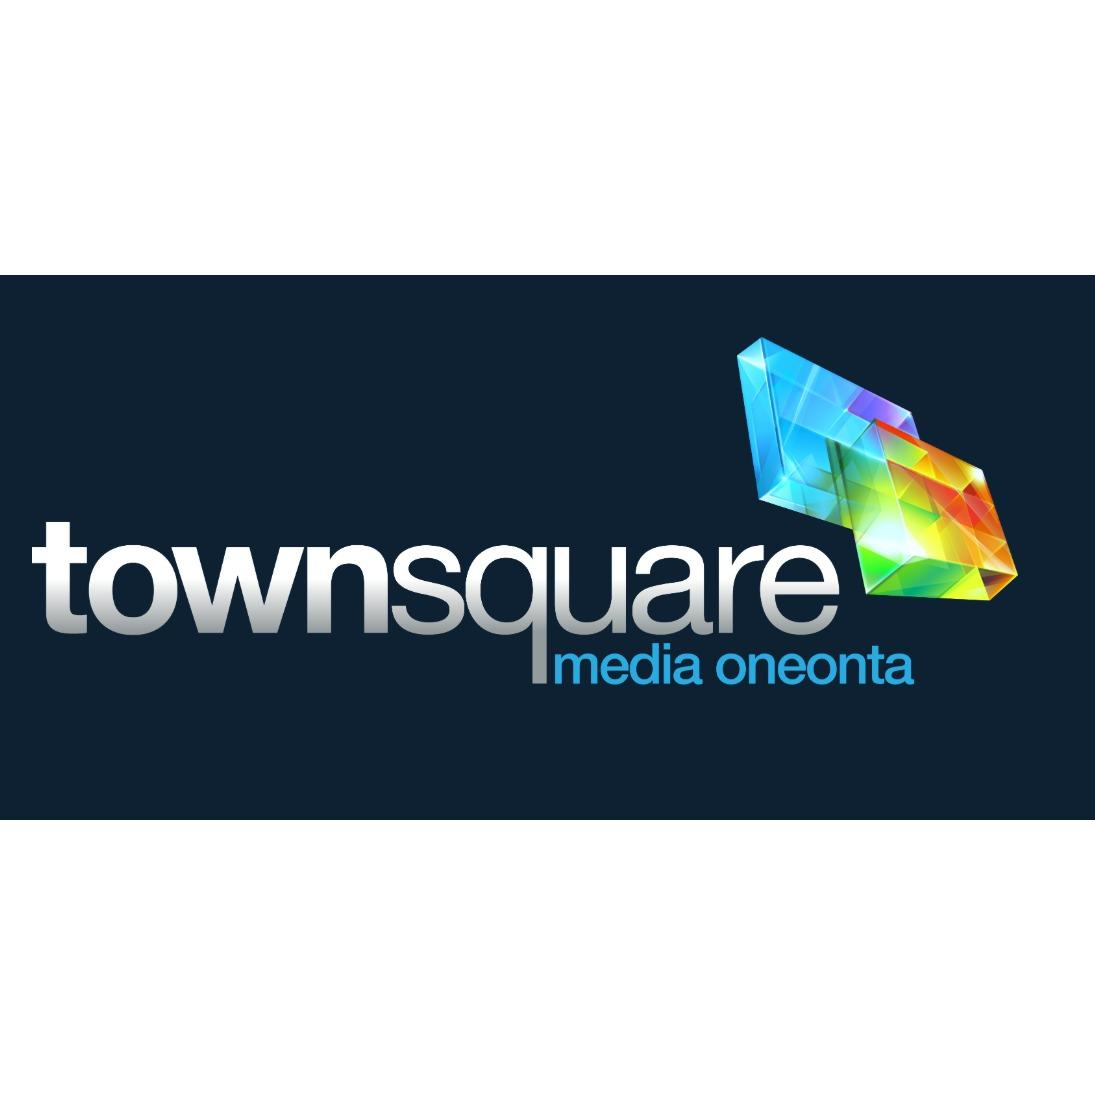 Townsquare Media Oneonta